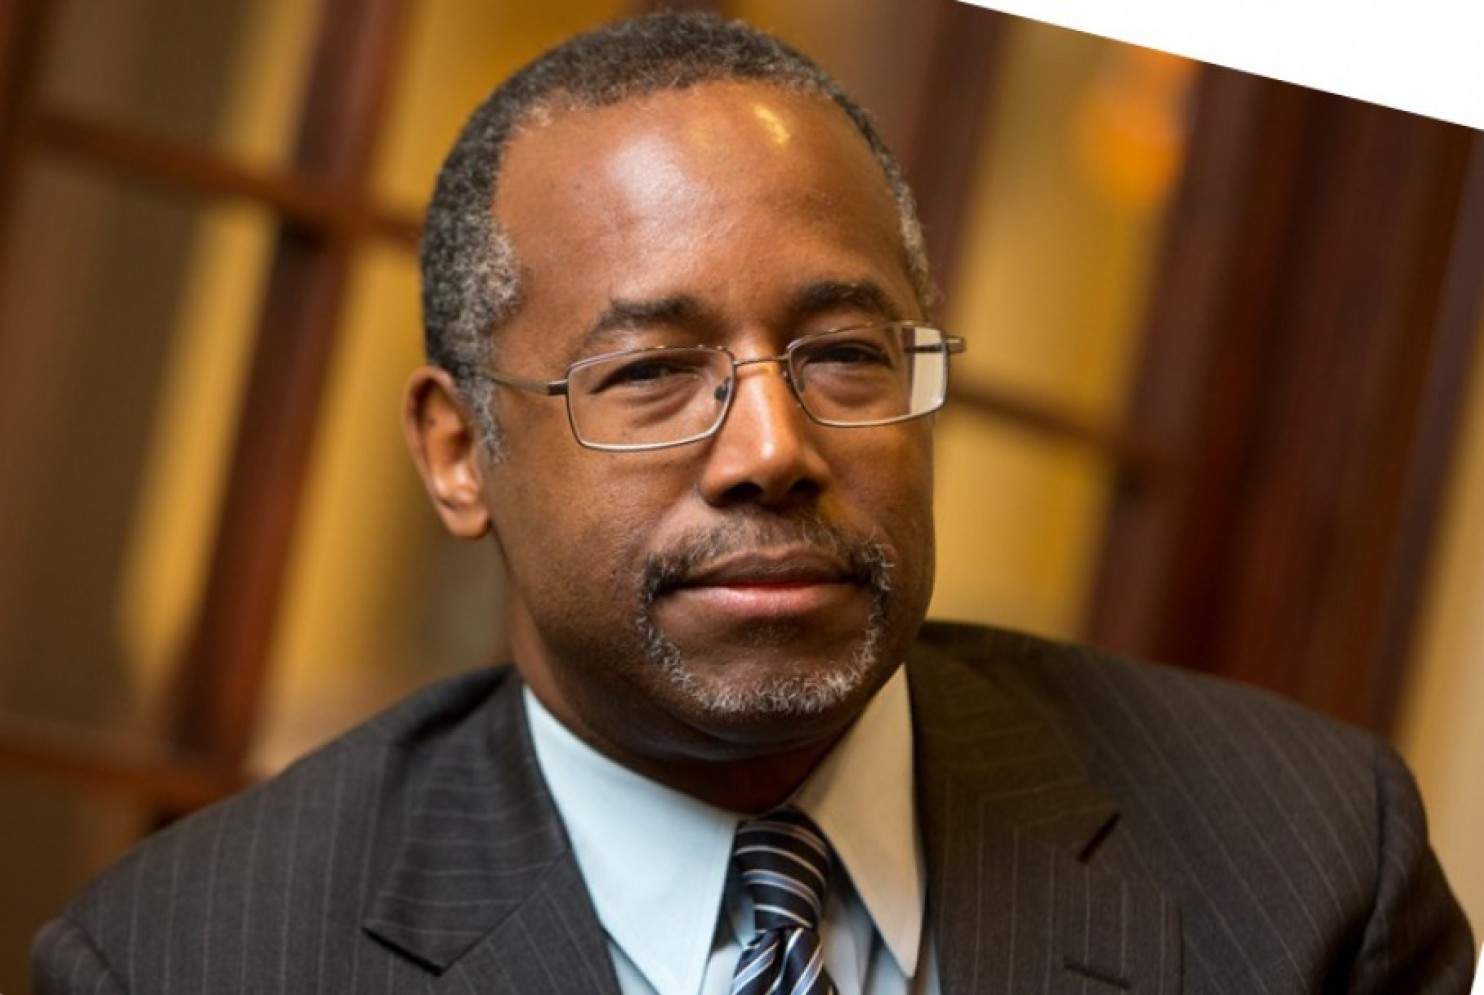 Secretary Ben Carson Totally Destroys Rep. Ilhan Omar With Devastating Tweet